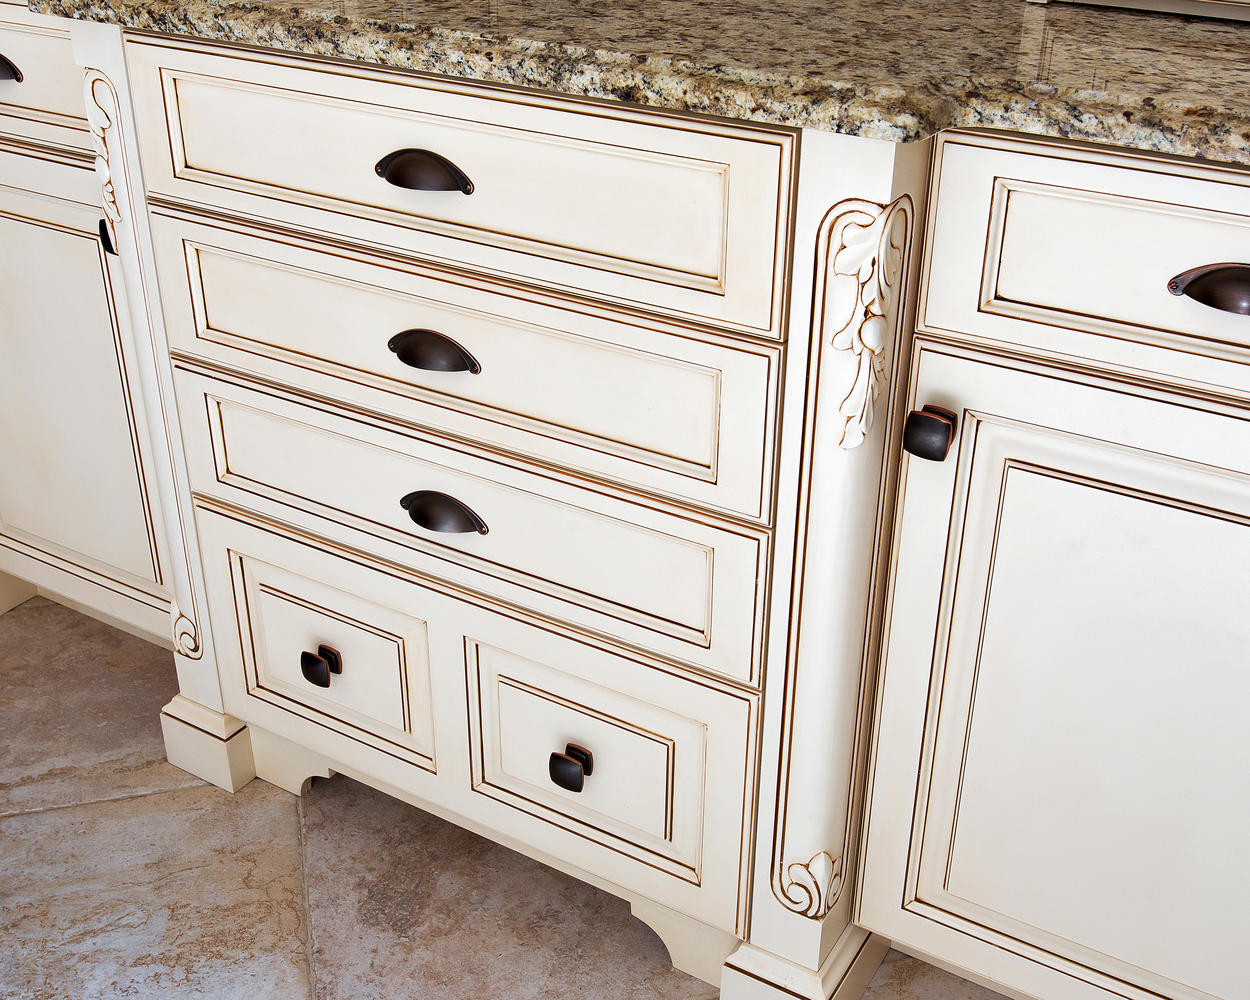 Traditional Kitchen Cabinets Toms River New Jersey by Design Line ...